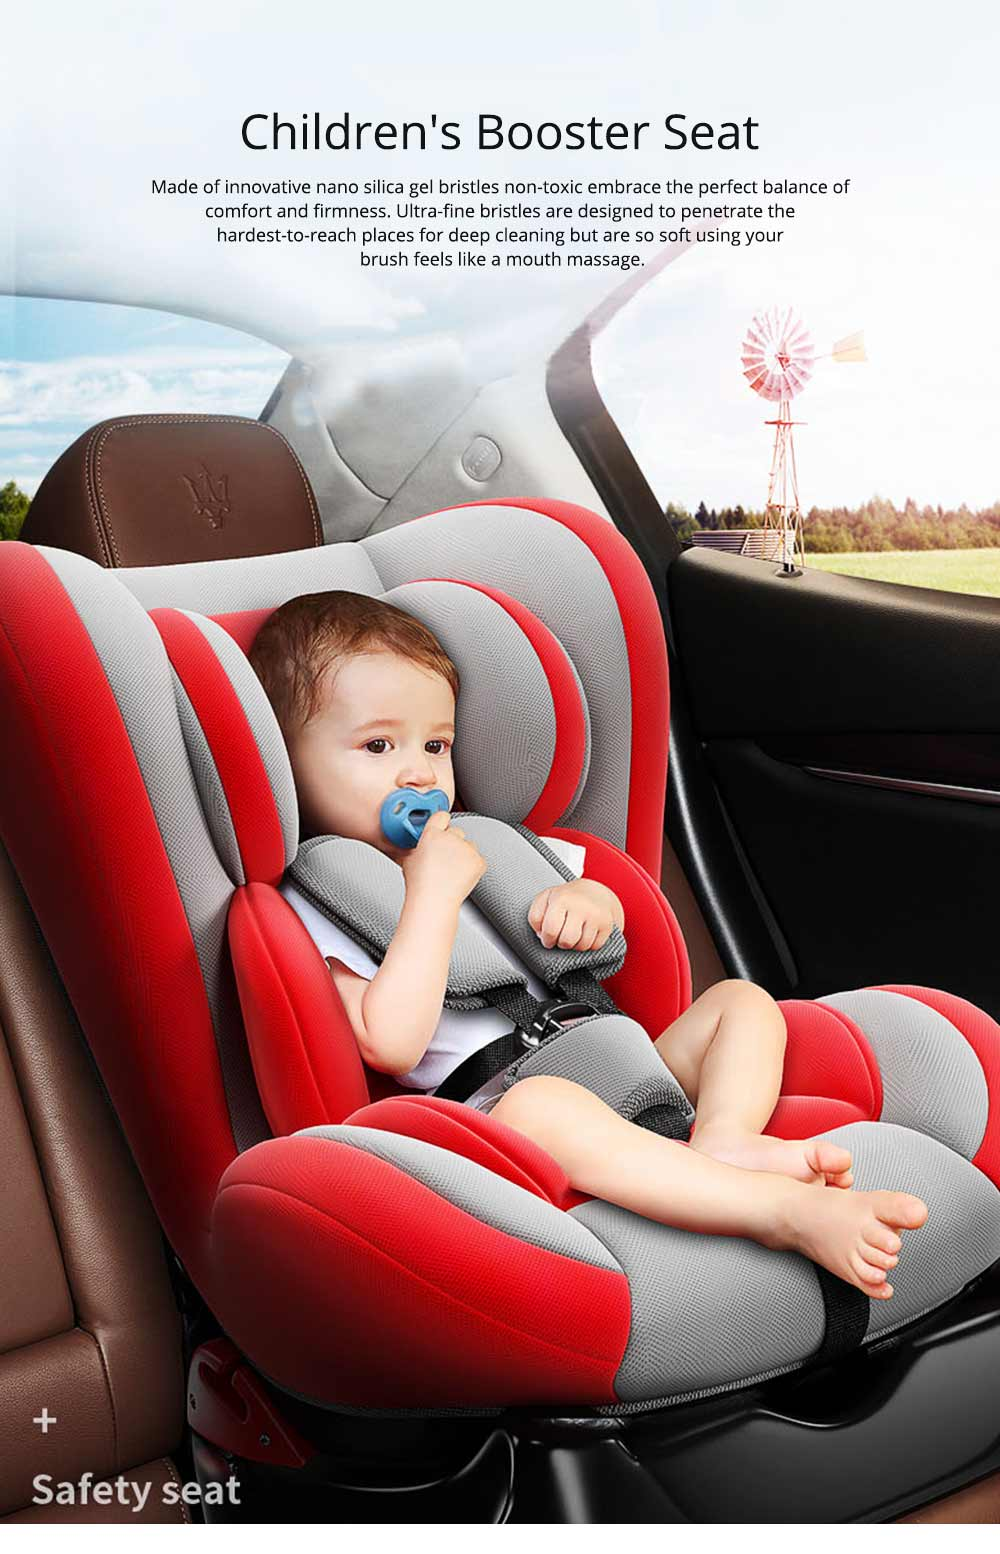 Children's Booster Seat Large Auto Car Seat Protectors for Child, Baby Safety Seat Thick Padding Car Seat 0